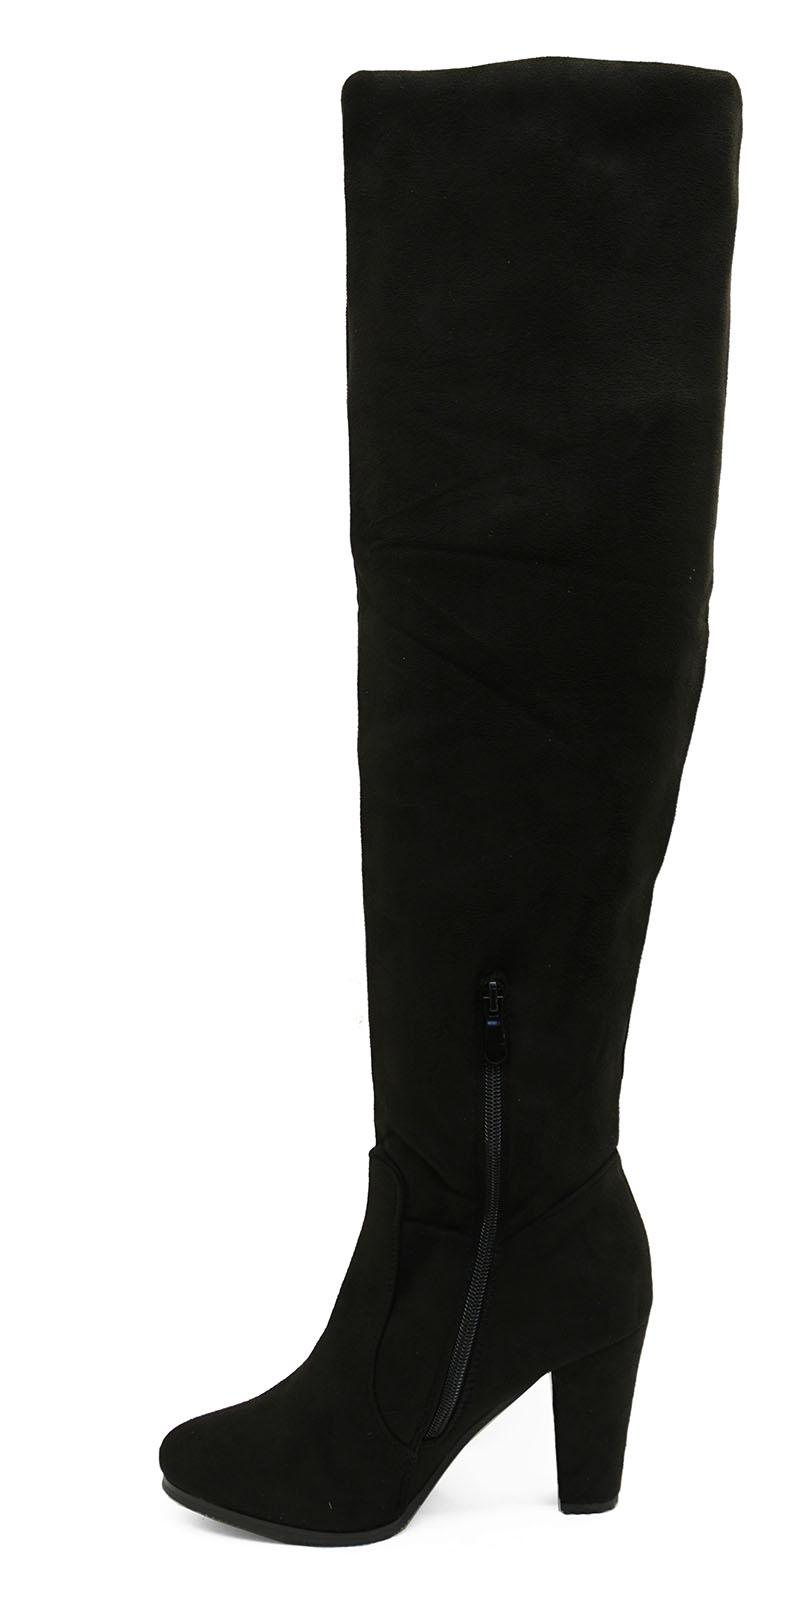 3547fb82b92 Details about WOMENS BLACK SOFT OVER-THE KNEE WINTER STRETCHY THIGH BOOT  SHOES SIZES 3-8